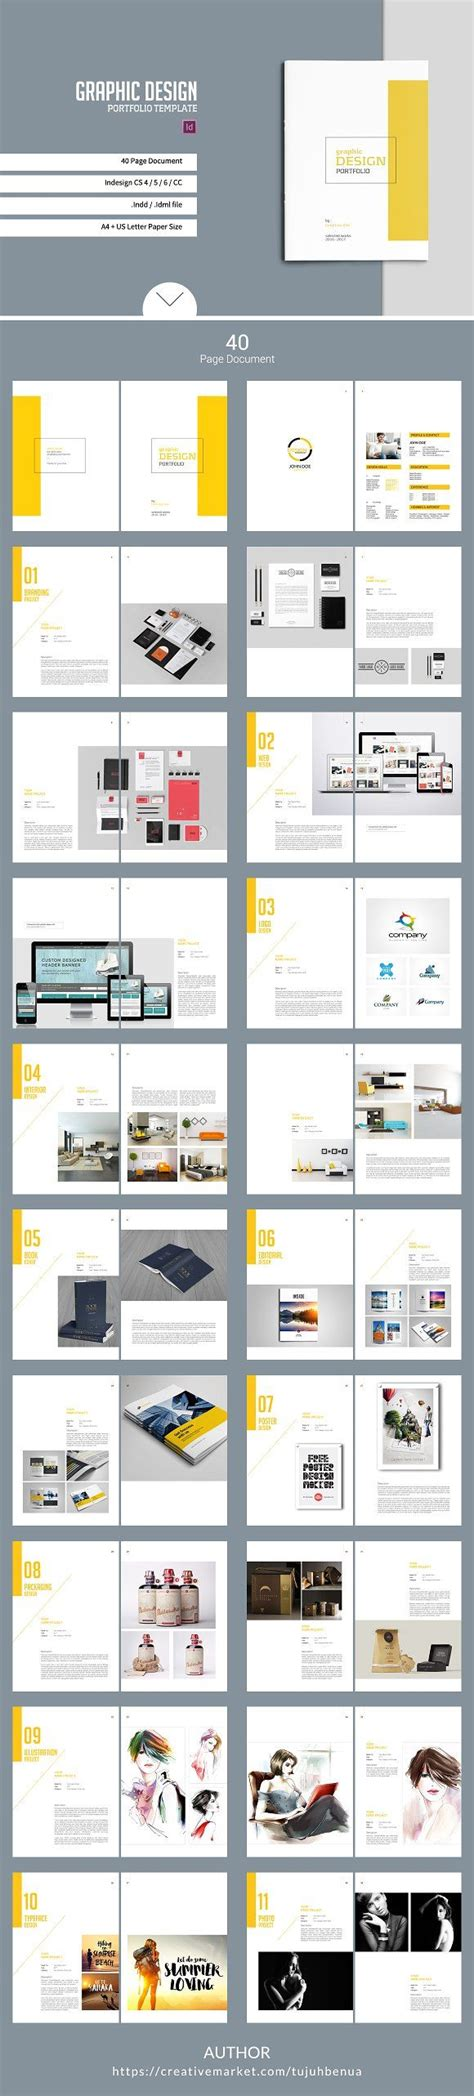 25 trending design portfolio layout ideas on pinterest